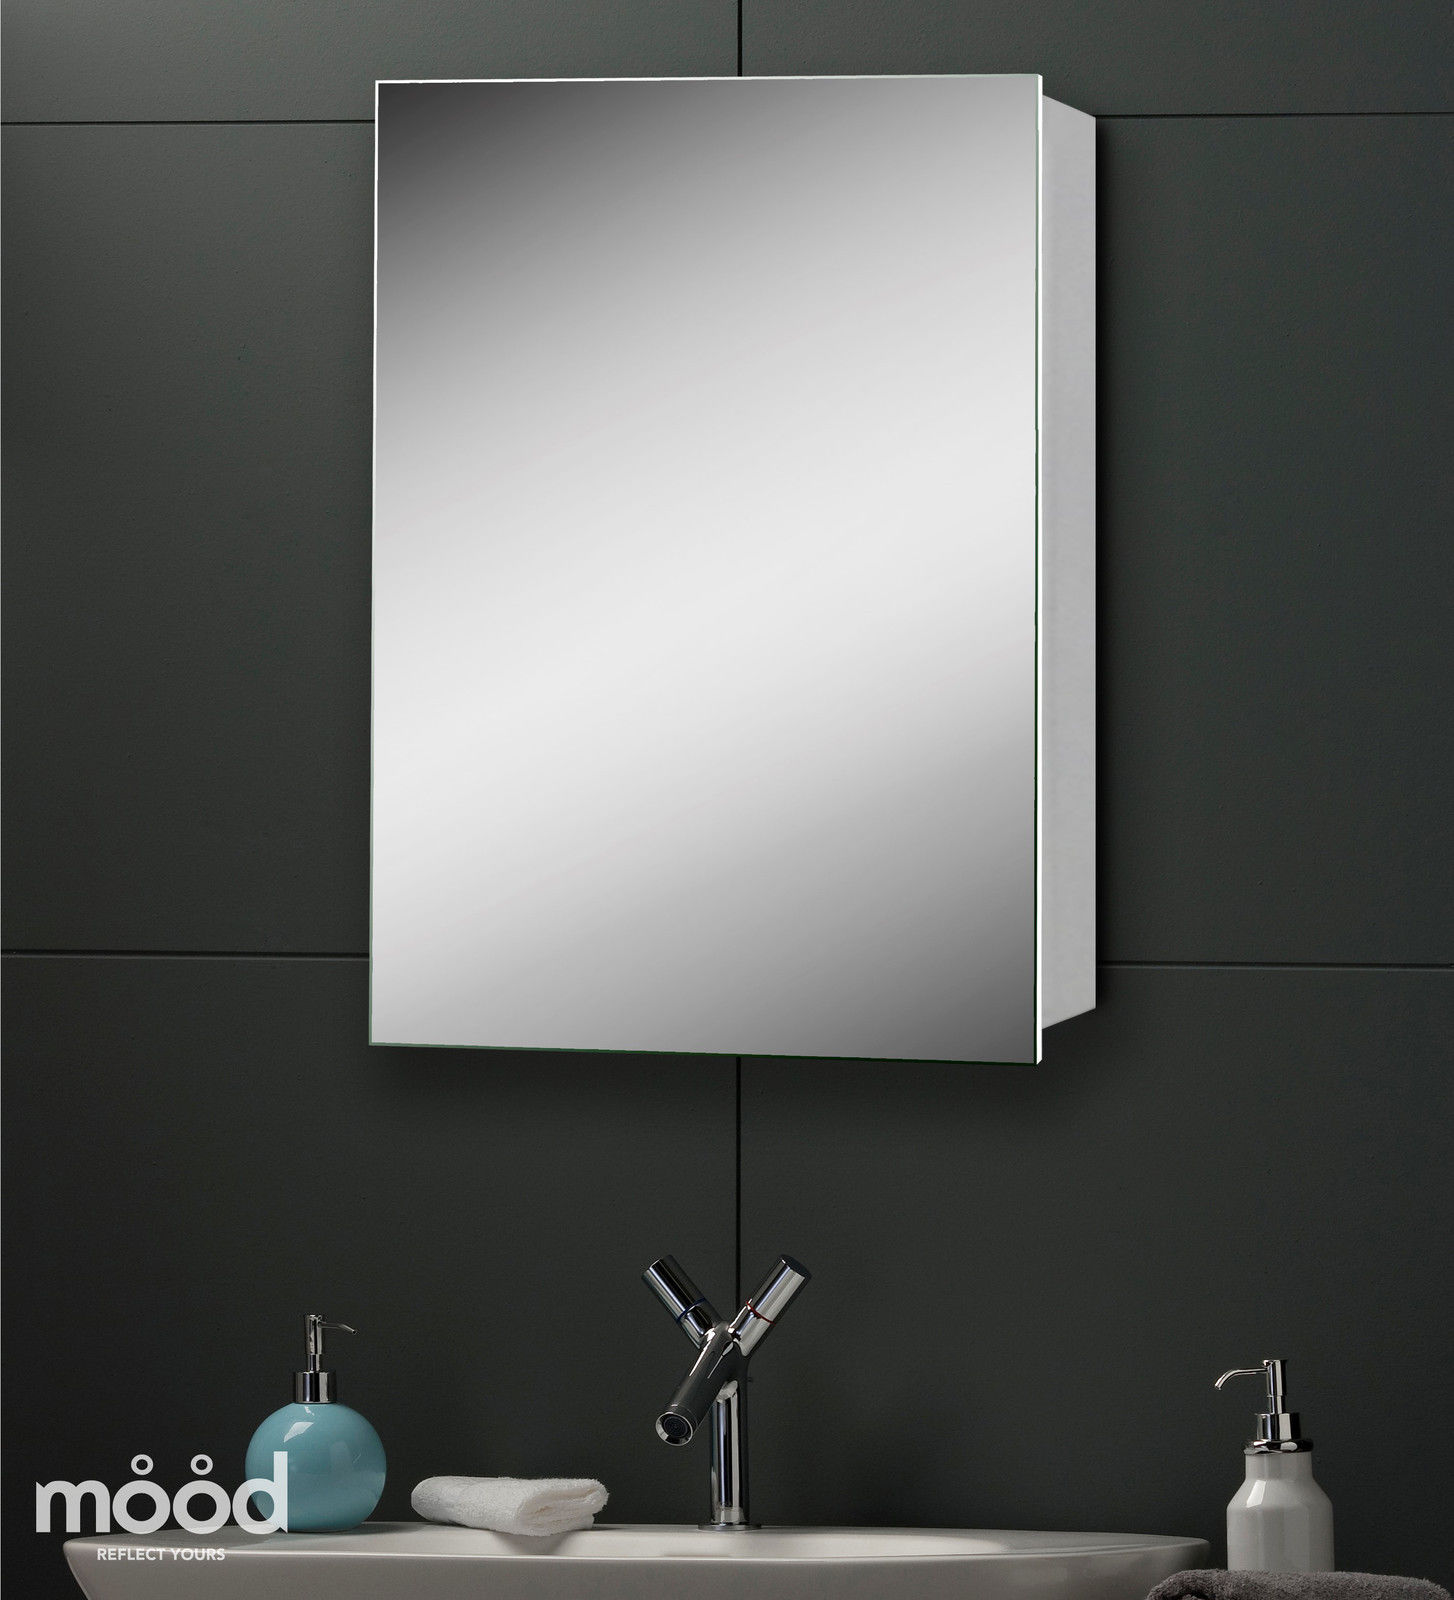 Elegant slim aluminium bathroom mirror cabinet 70x50 with mirror inside c21 ebay Neue design bathroom mirror